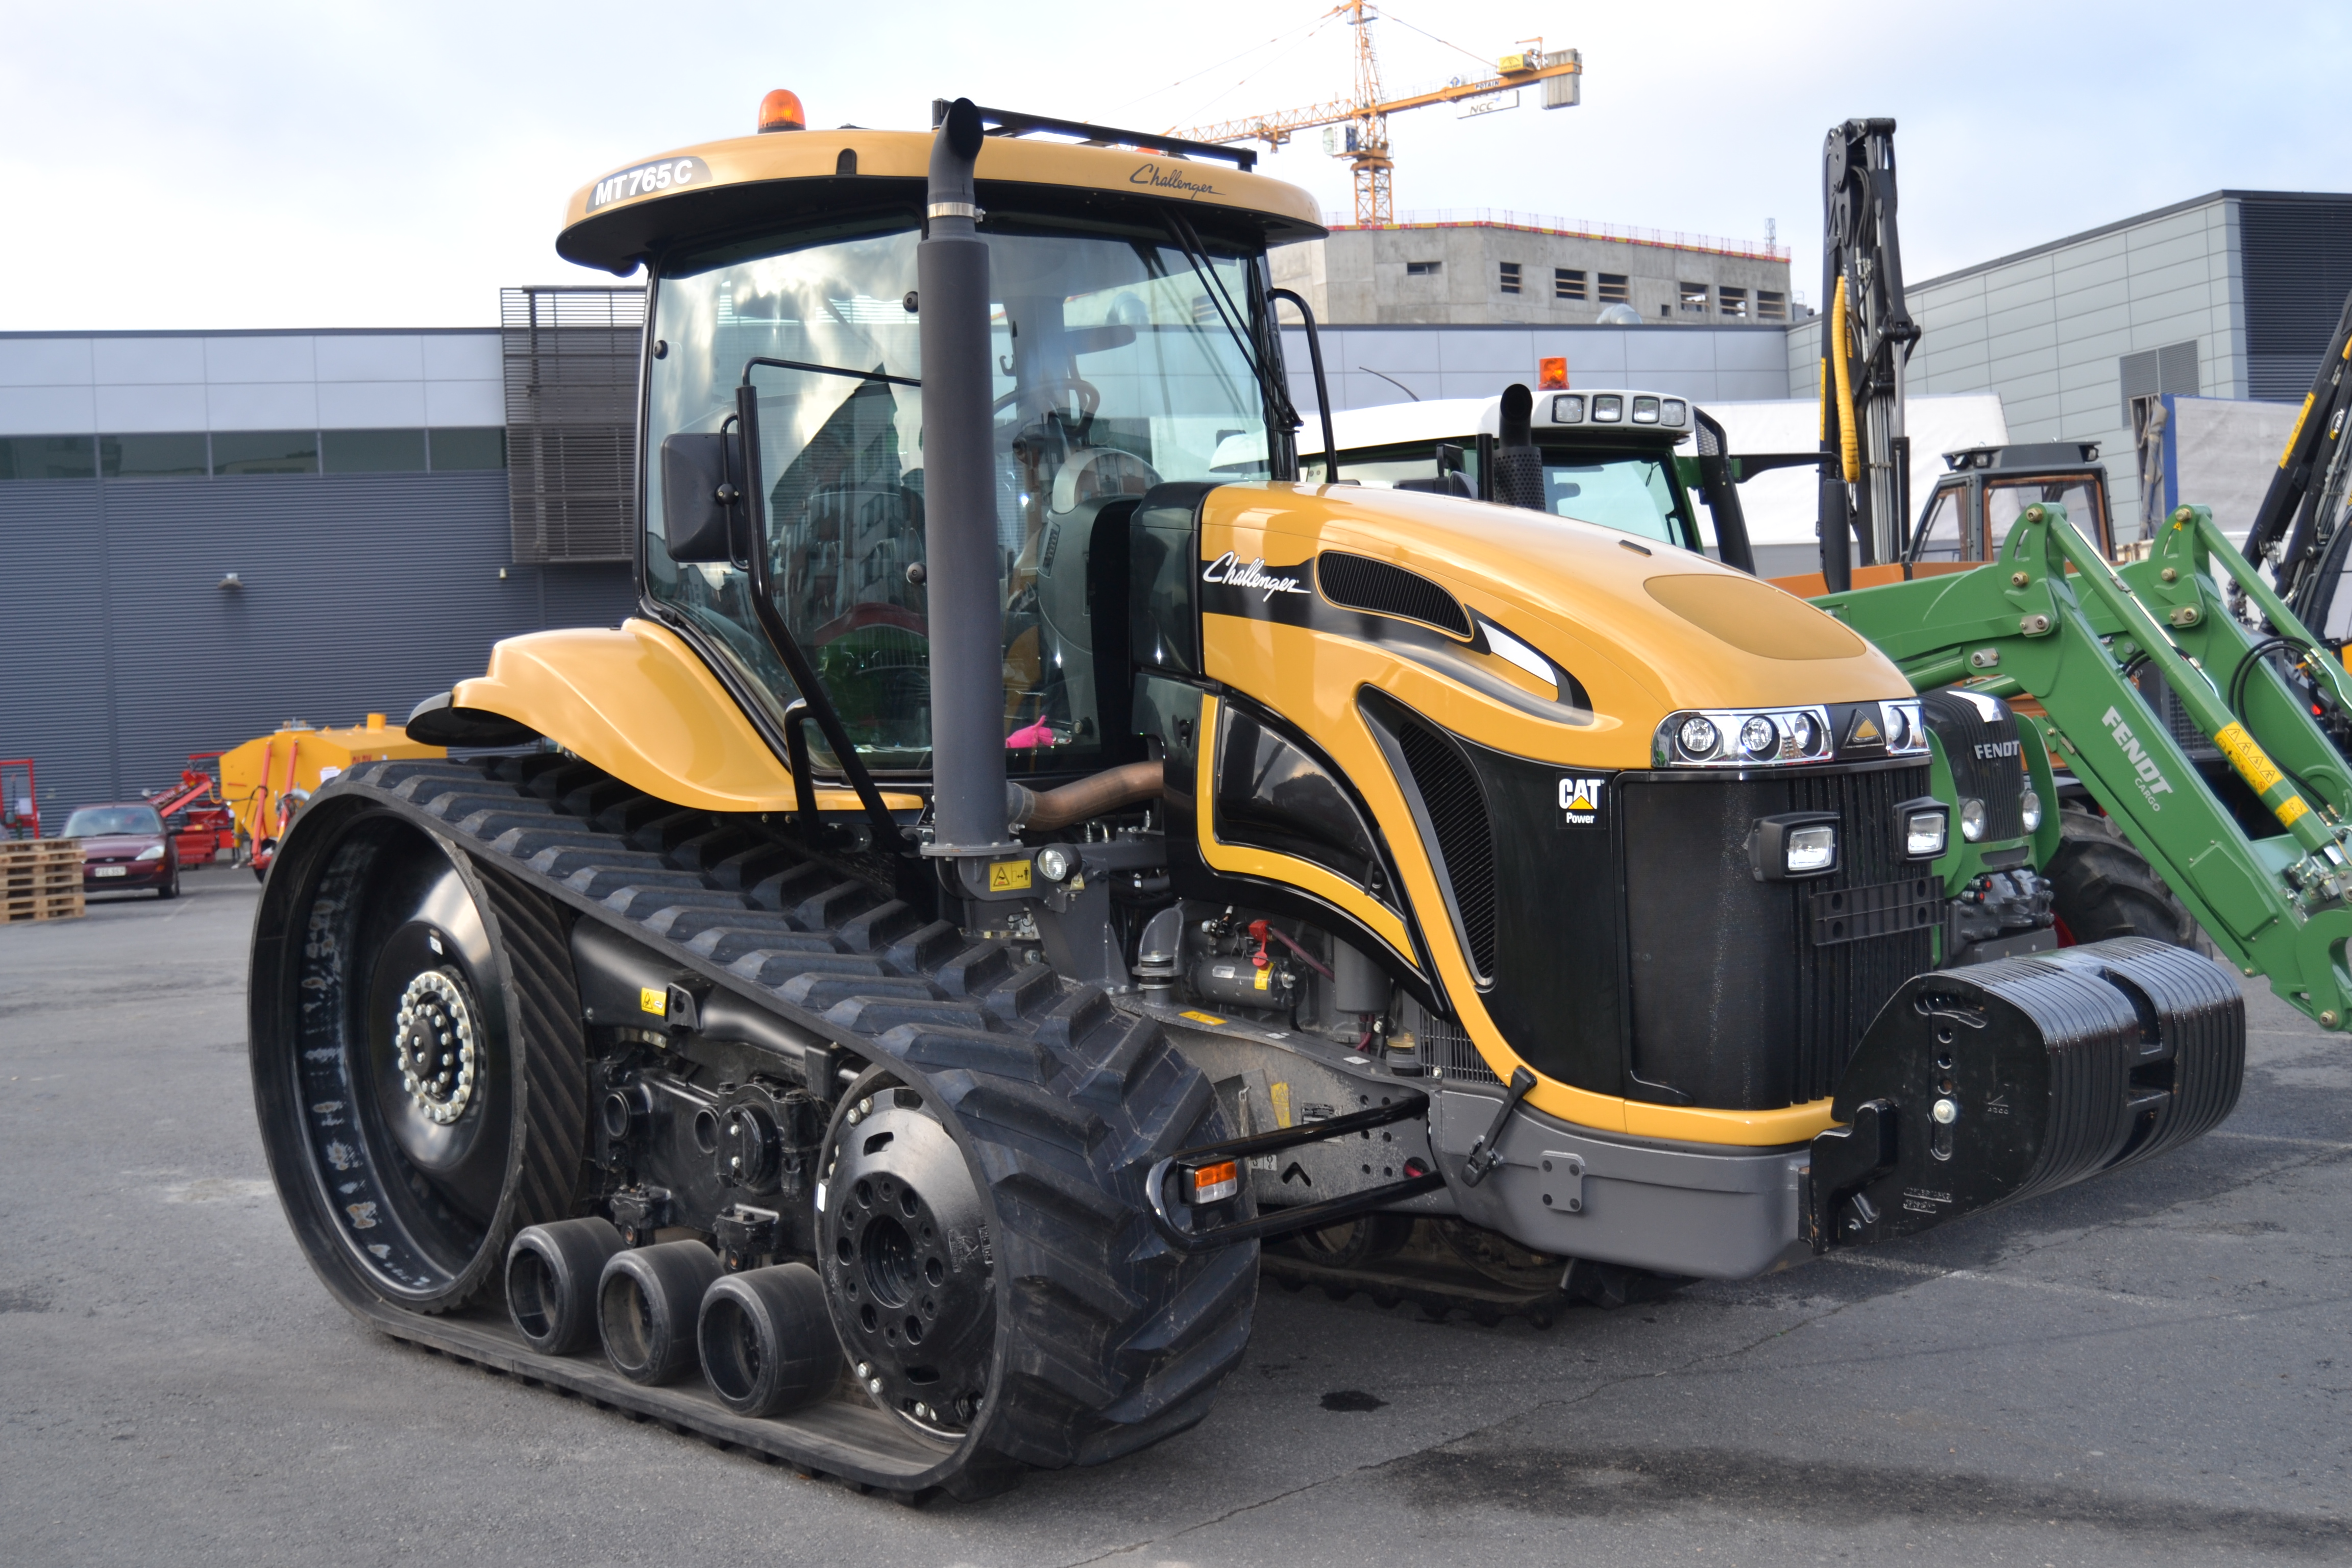 challenger tractor with File Cat Challenger Finland on 17247 Ferguson Tractor likewise Golden N174 Celebrates Golden Tractor For Design 2016 Award 4416 together with Watch also Farming Simulator 17 Collectors Edition For Pc moreover Challenger Tractor.